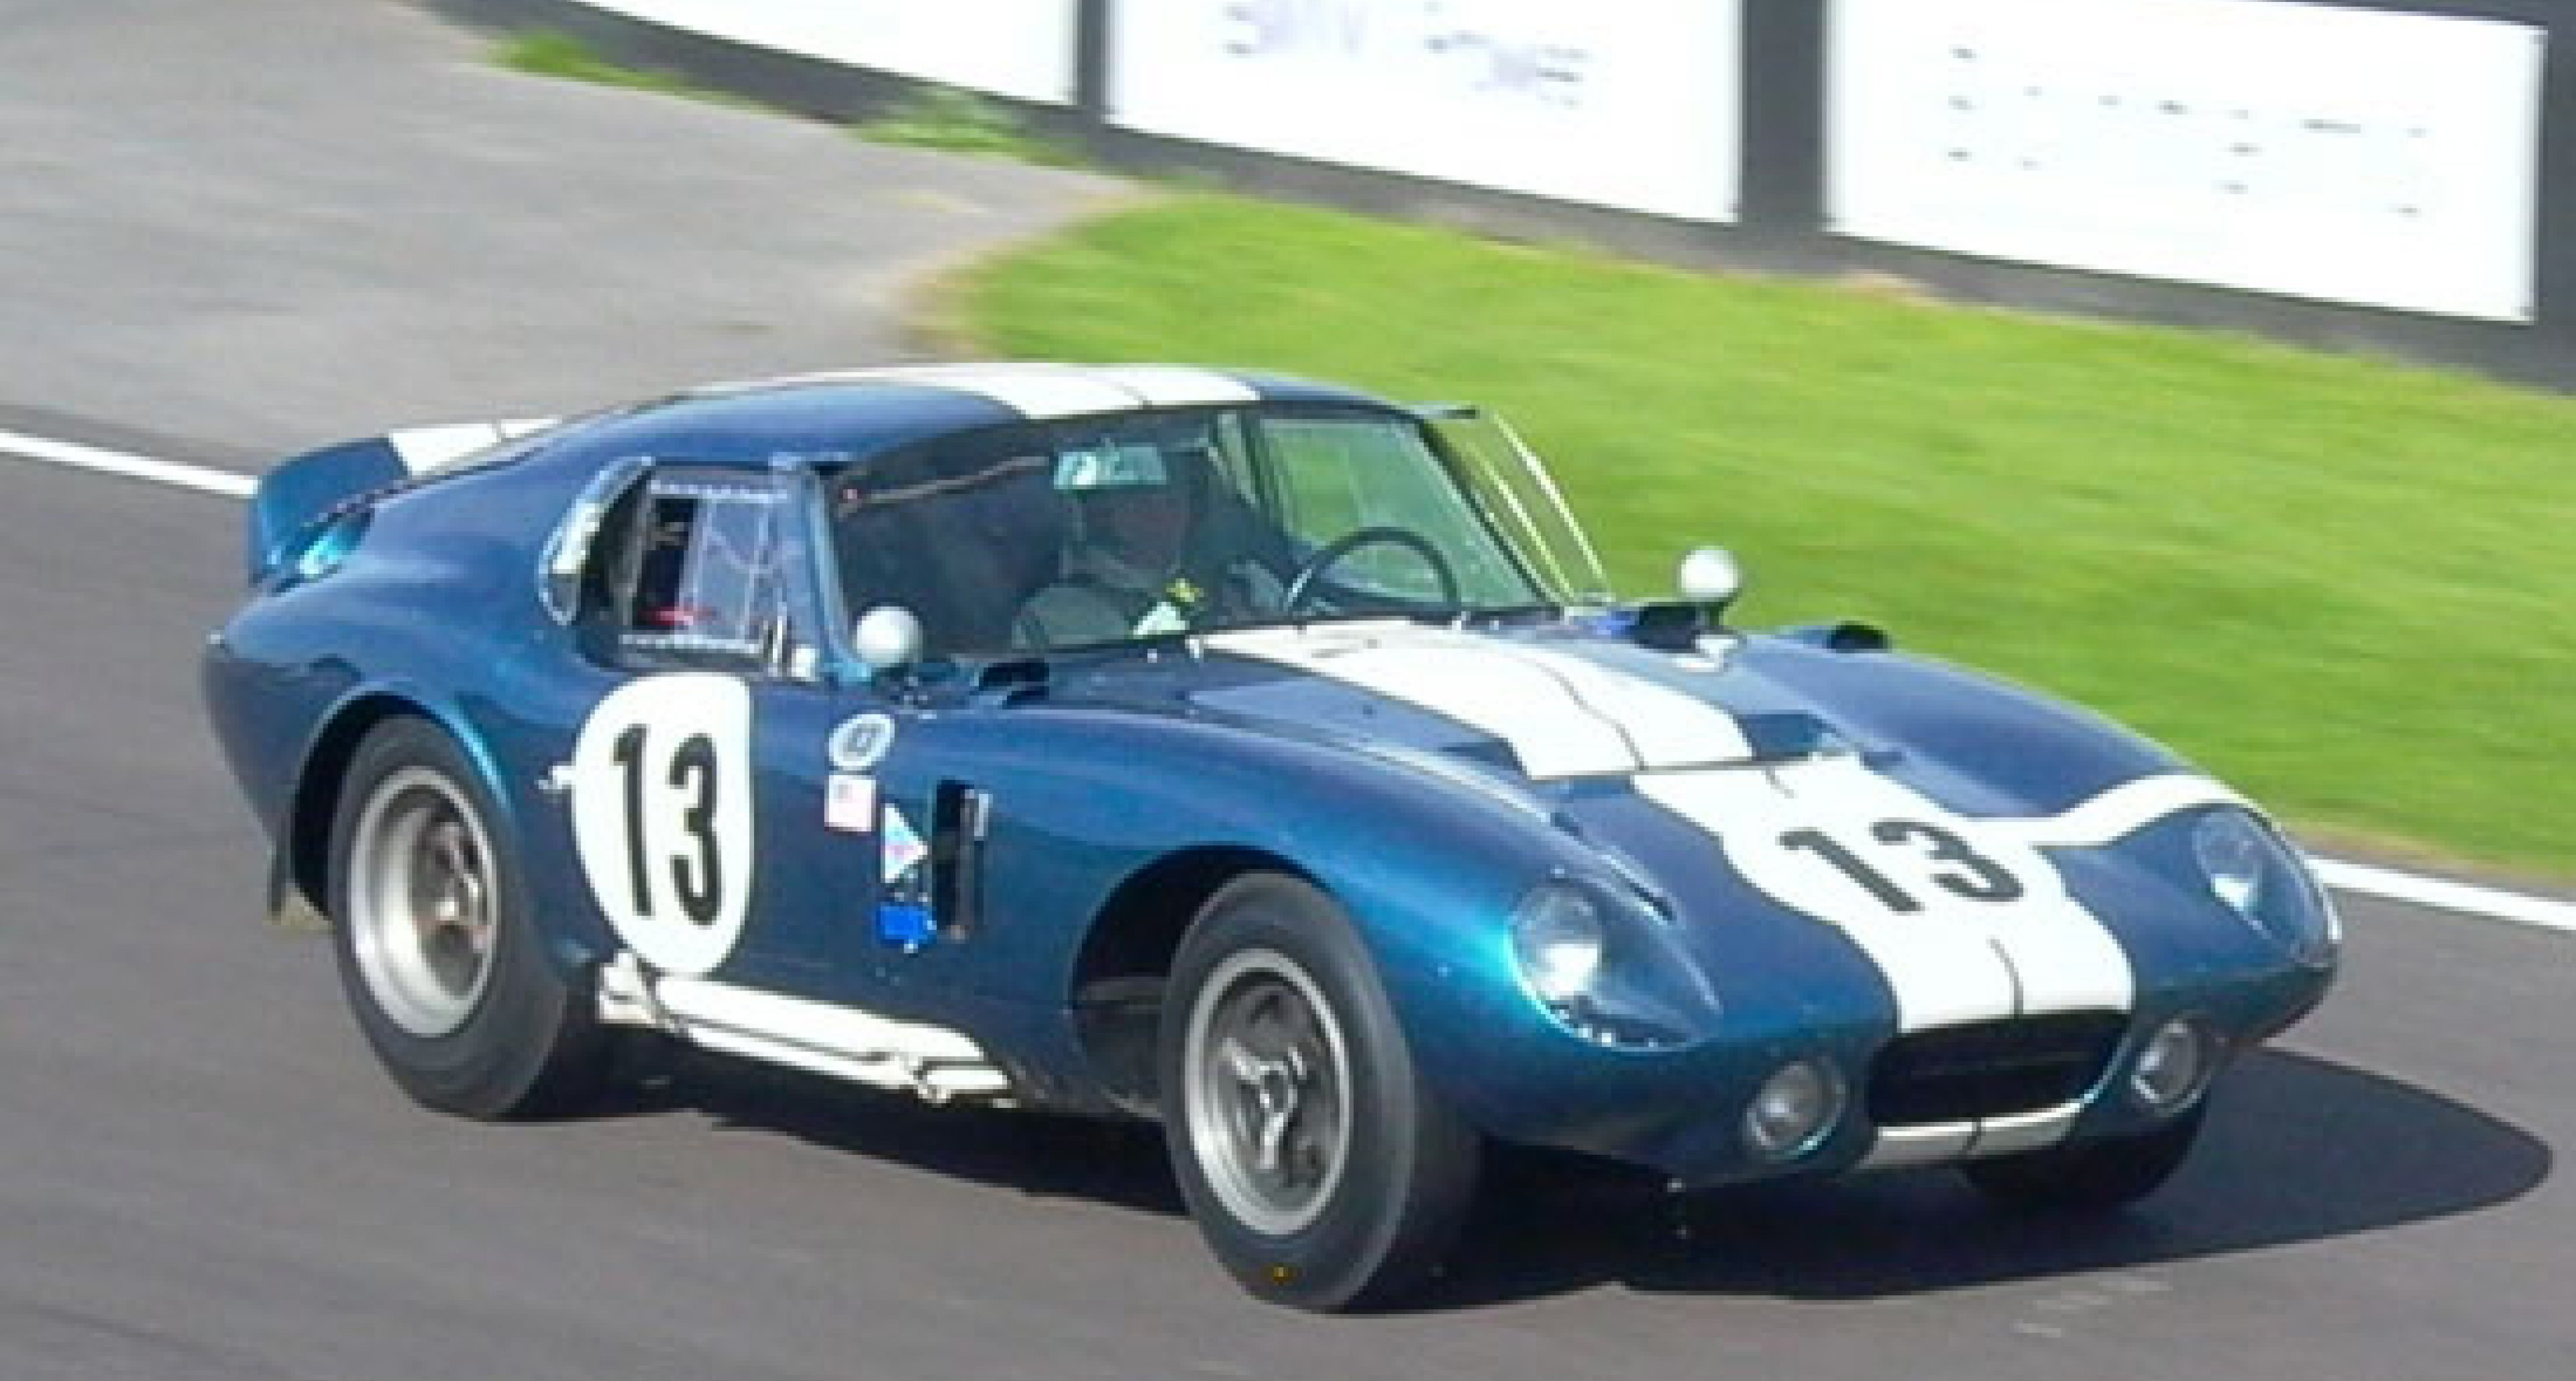 Goodwood Revival 2004 - Review